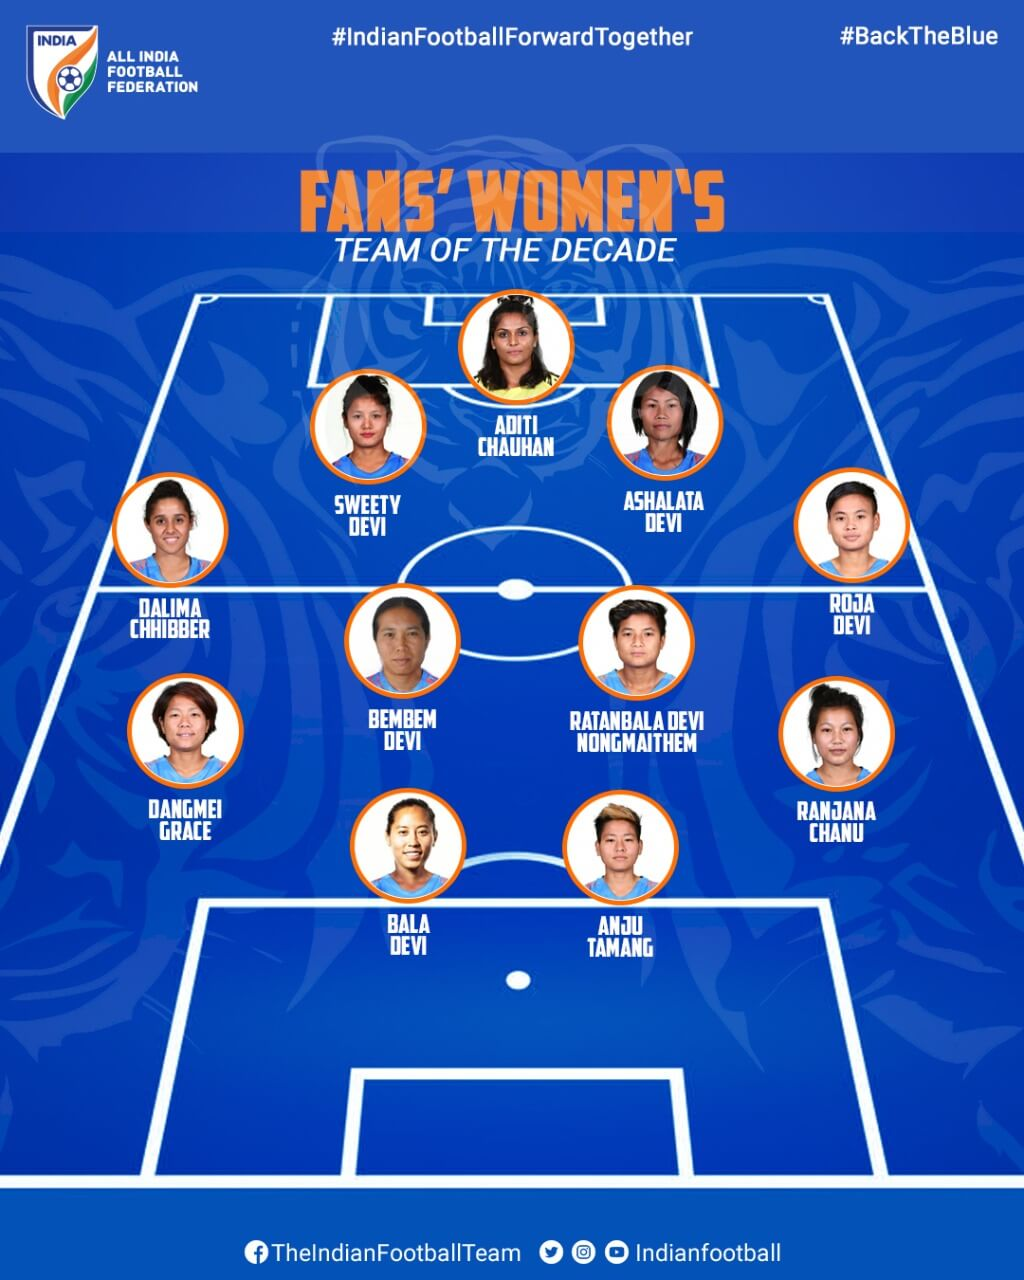 Fans' Women's Team of the Decade (Image courtesy: AIFF Media)